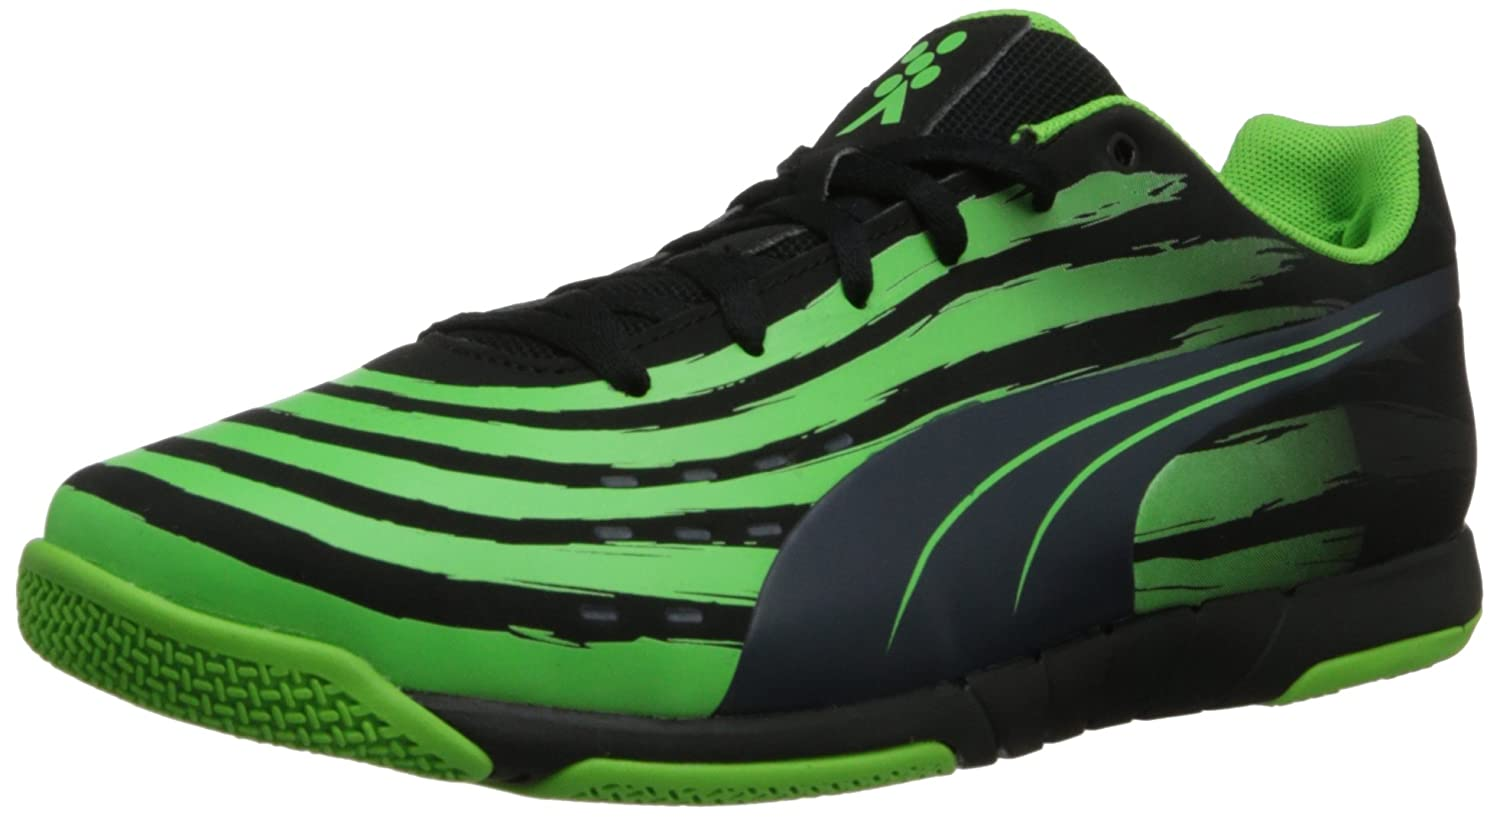 PUMA メンズ B00DOL33ME 8 mens_us|Black/Ombre Blue/Fluorescent Green Black/Ombre Blue/Fluorescent Green 8 mens_us